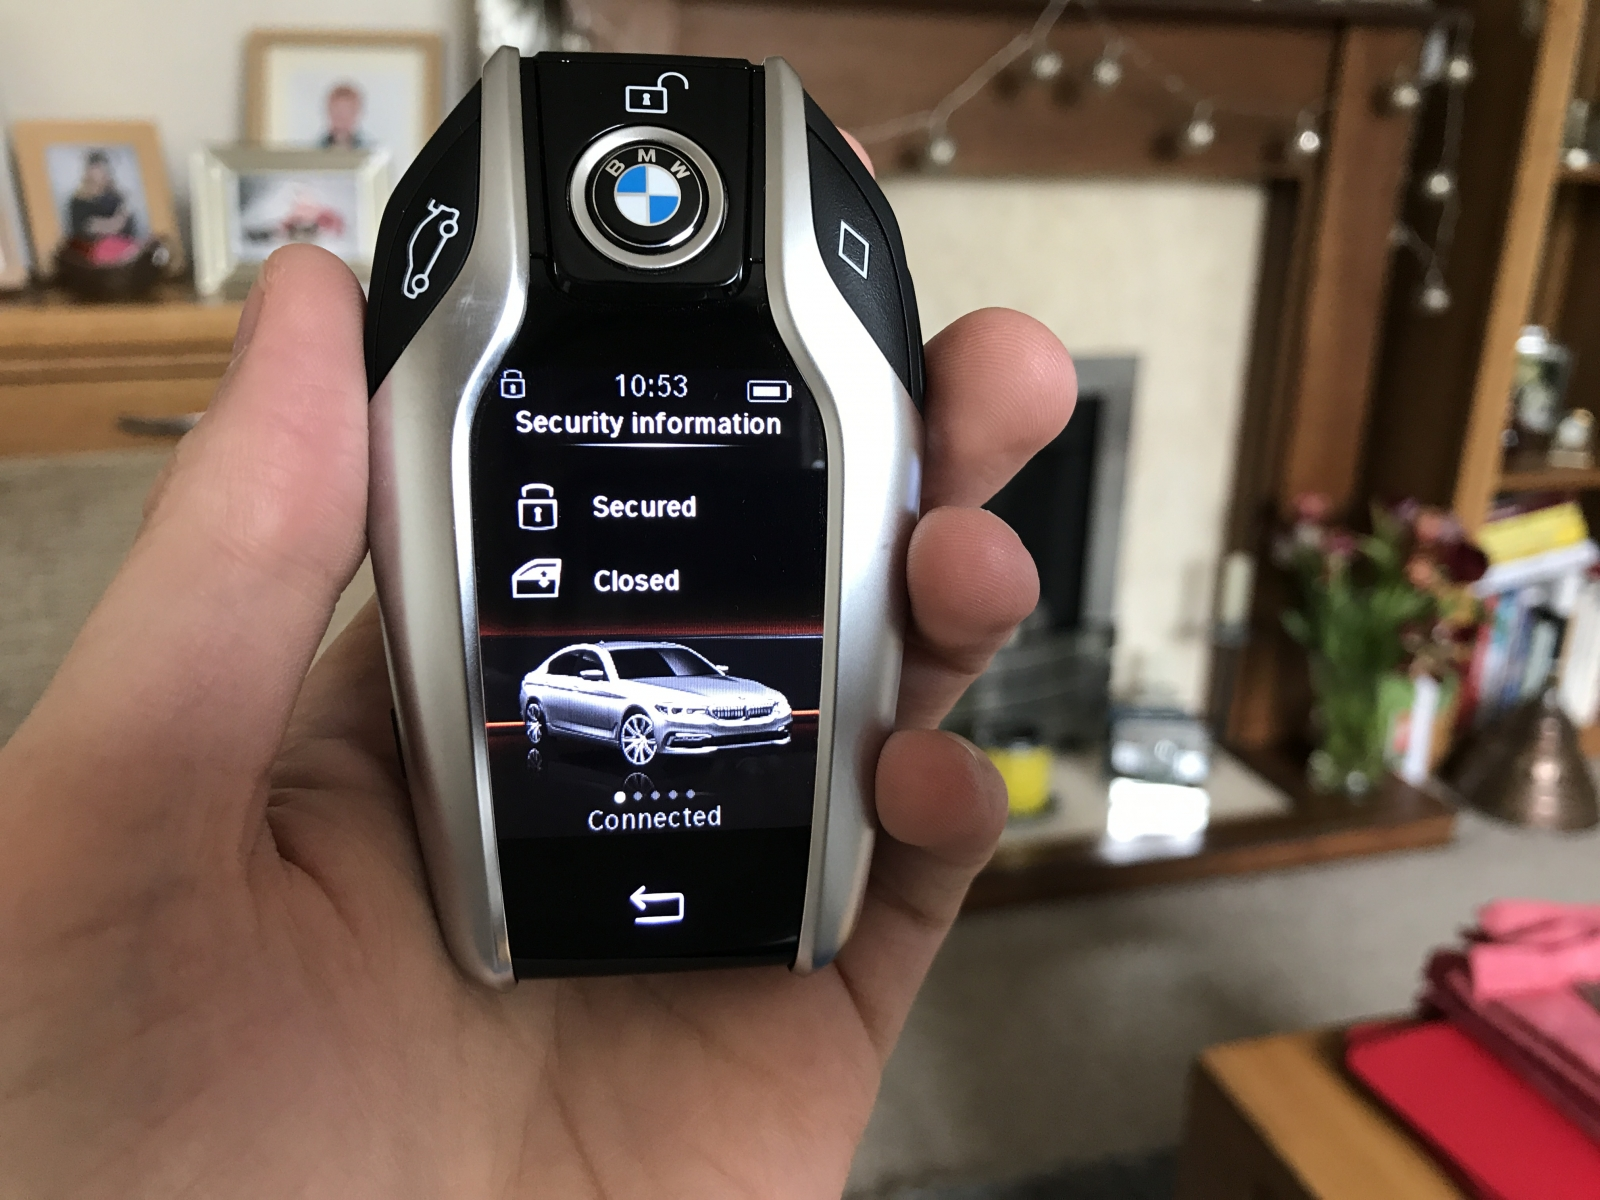 BMW 5-Series key fob